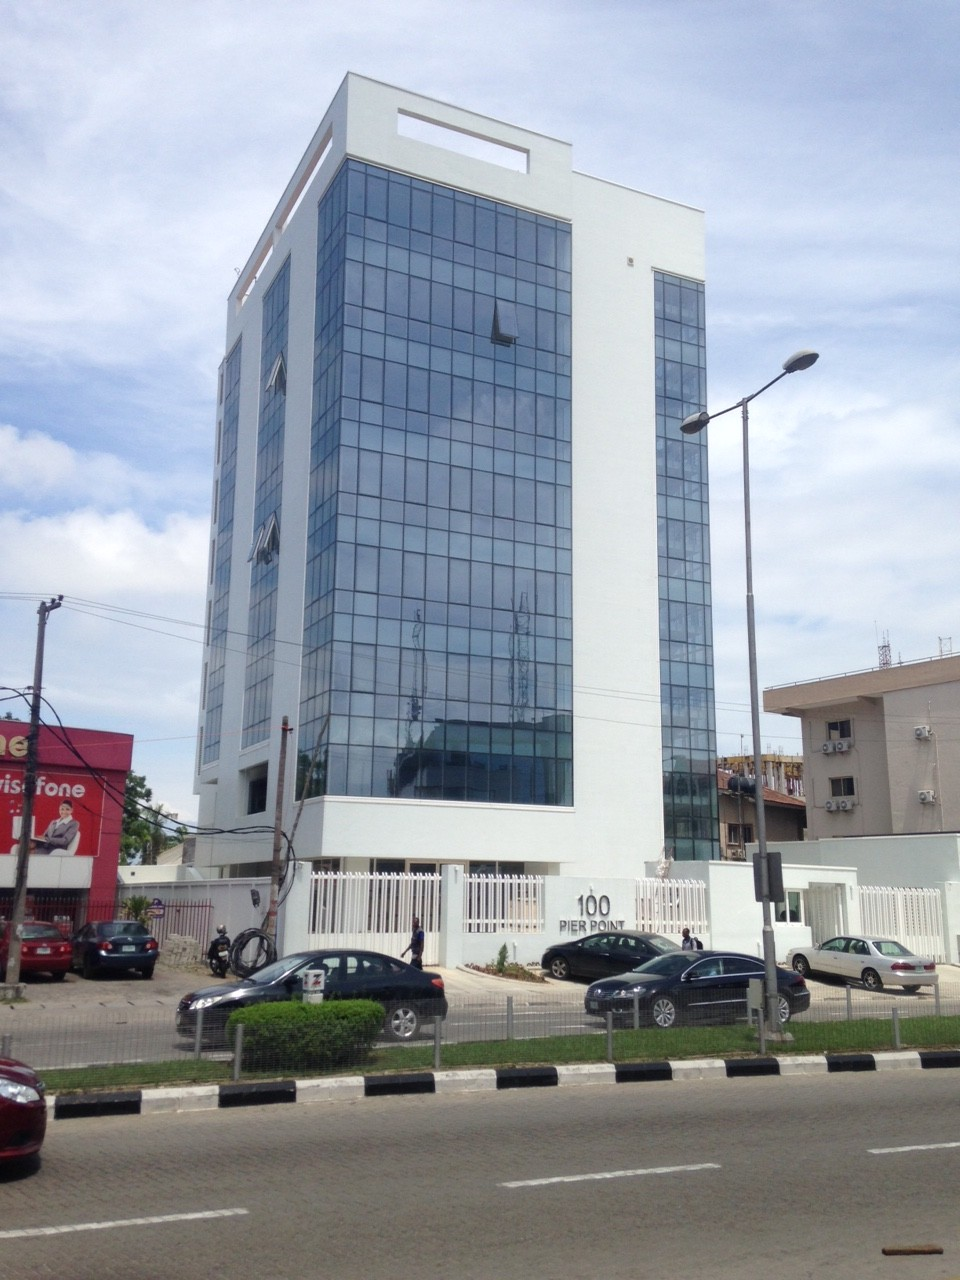 100 Pier Point, Ajose Adeogun. Image Credit: estateintel.com